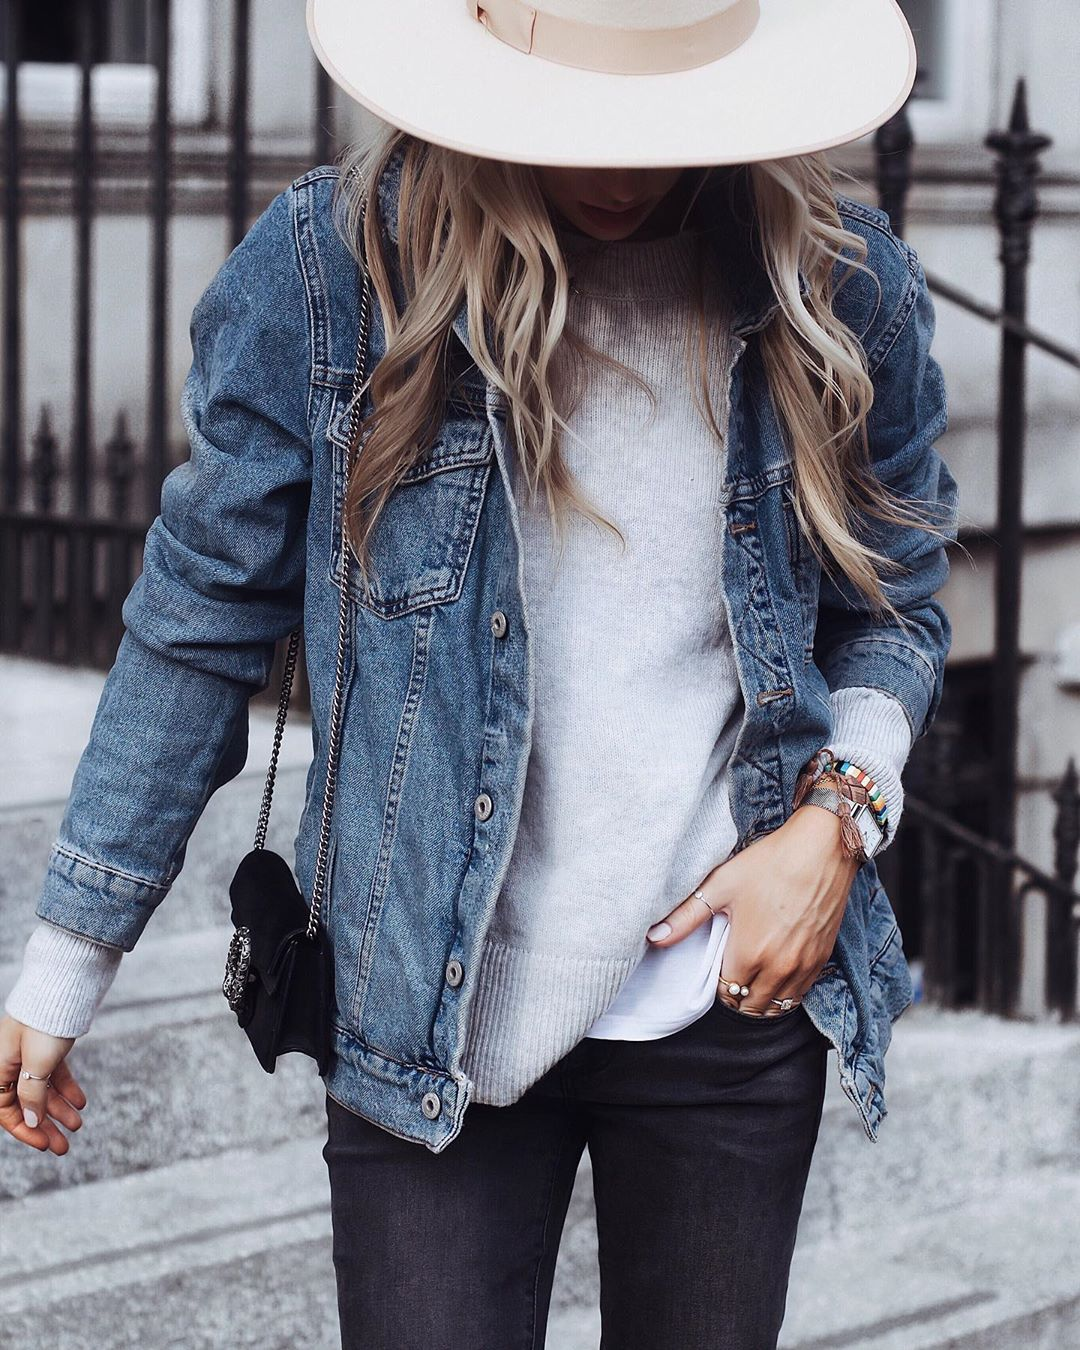 These Are the Best Denim Jackets to Buy This Winter